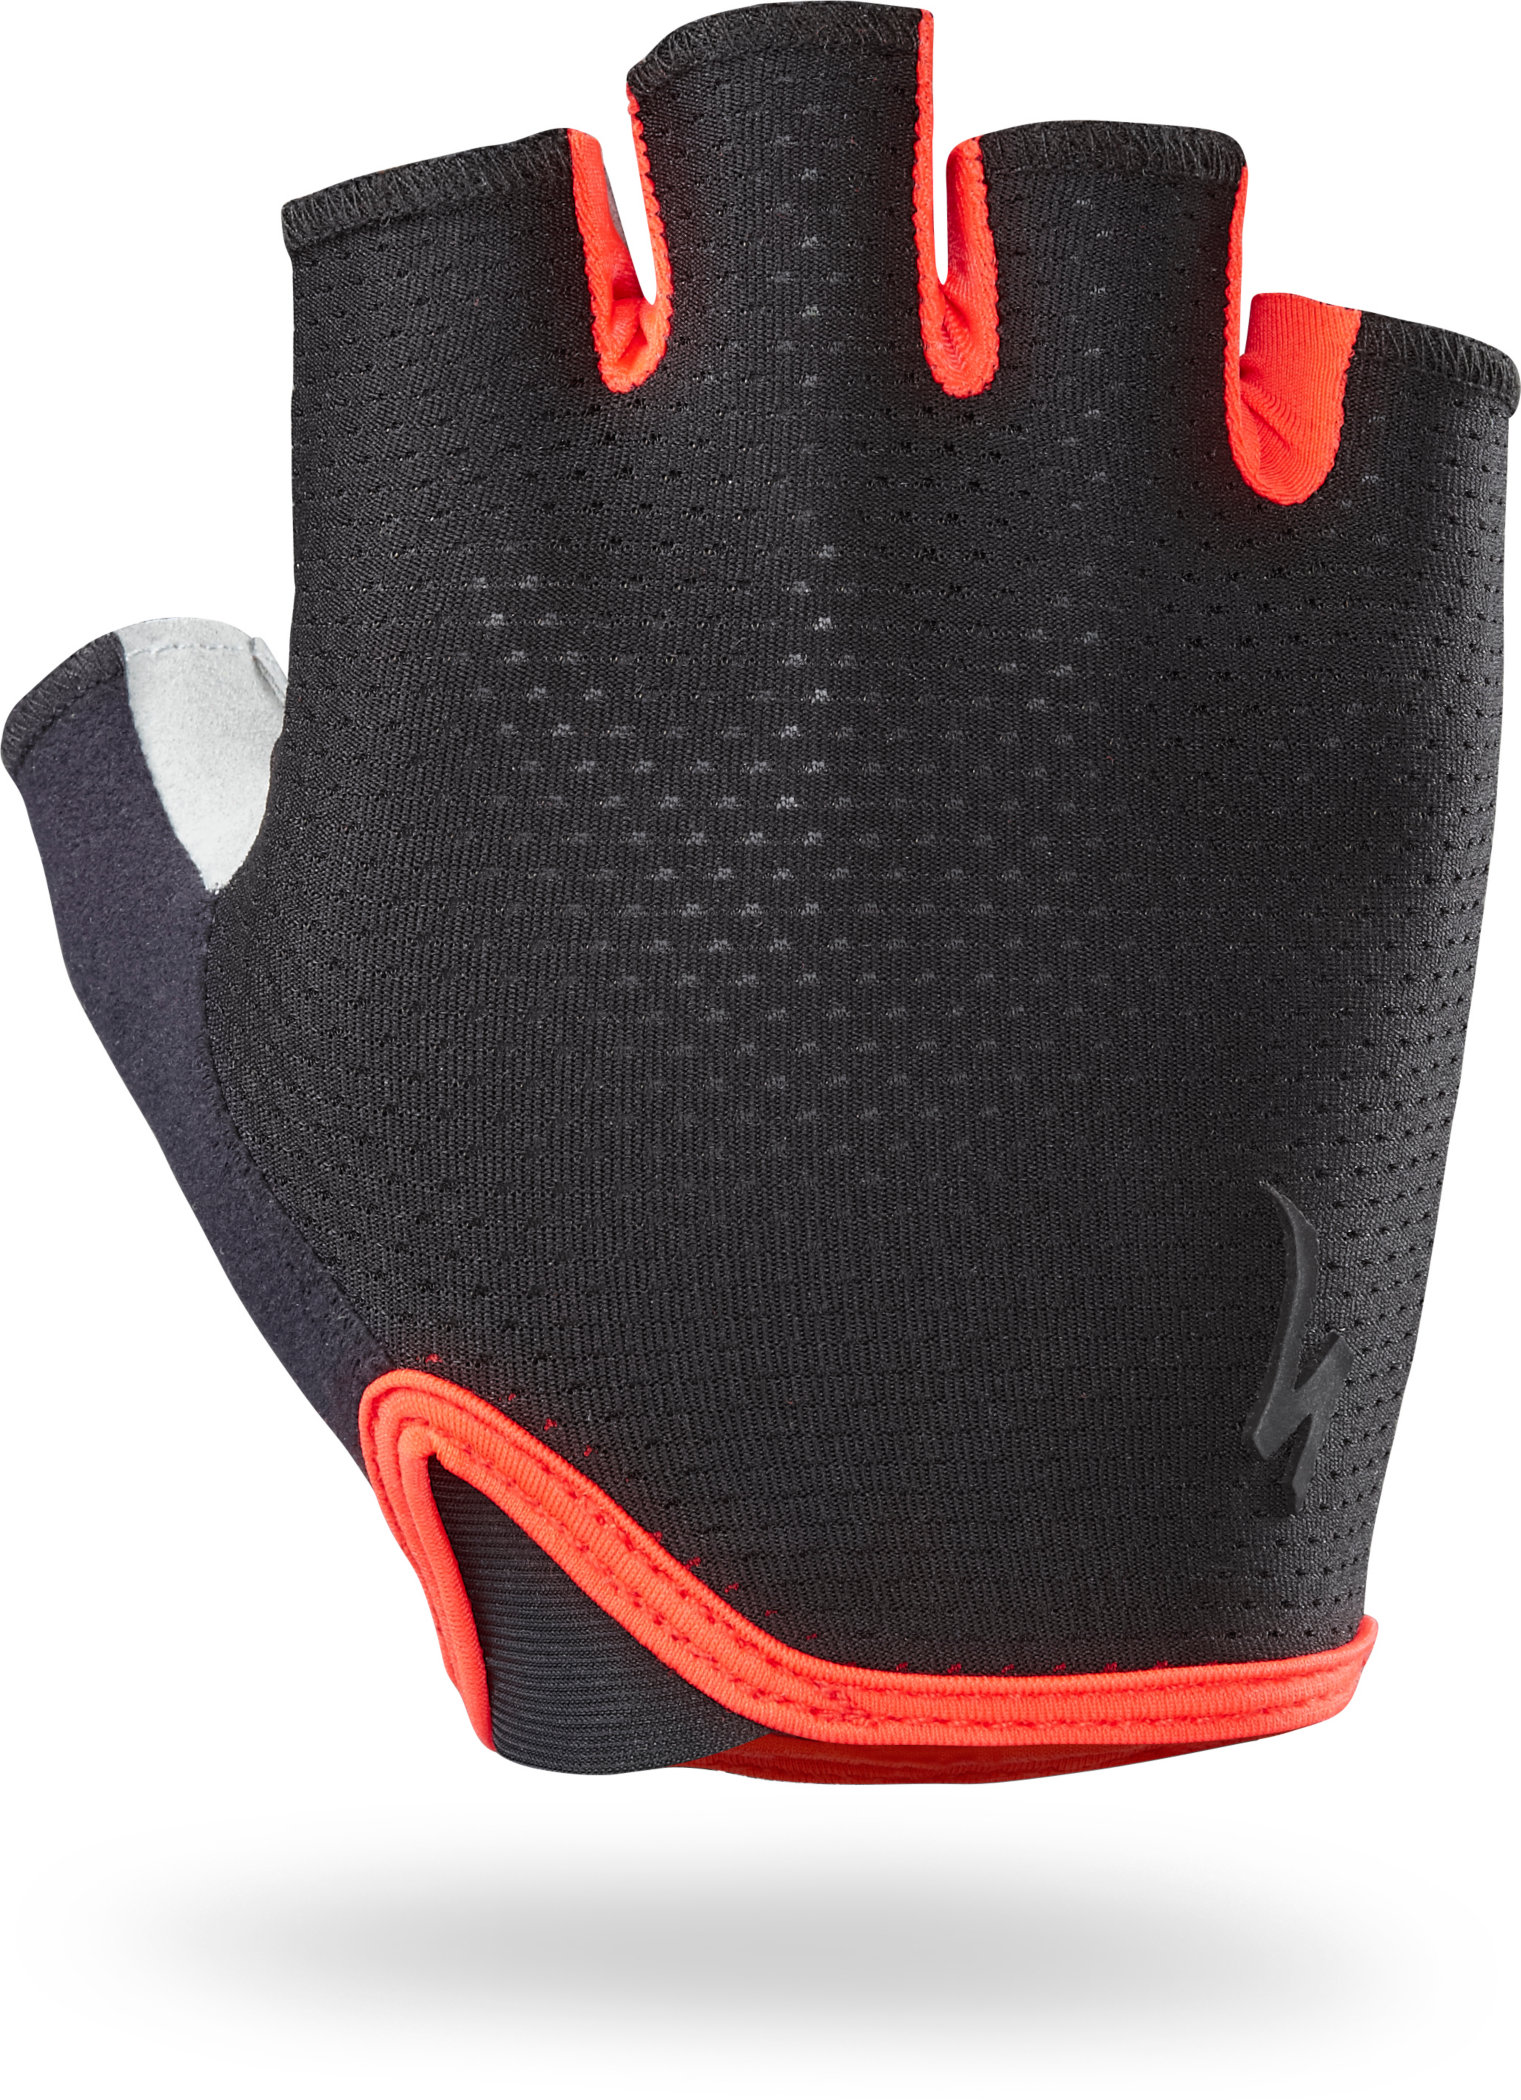 SPECIALIZED BG GRAIL GLOVE SF BLK/RKTRED XXL - Bikedreams & Dustbikes